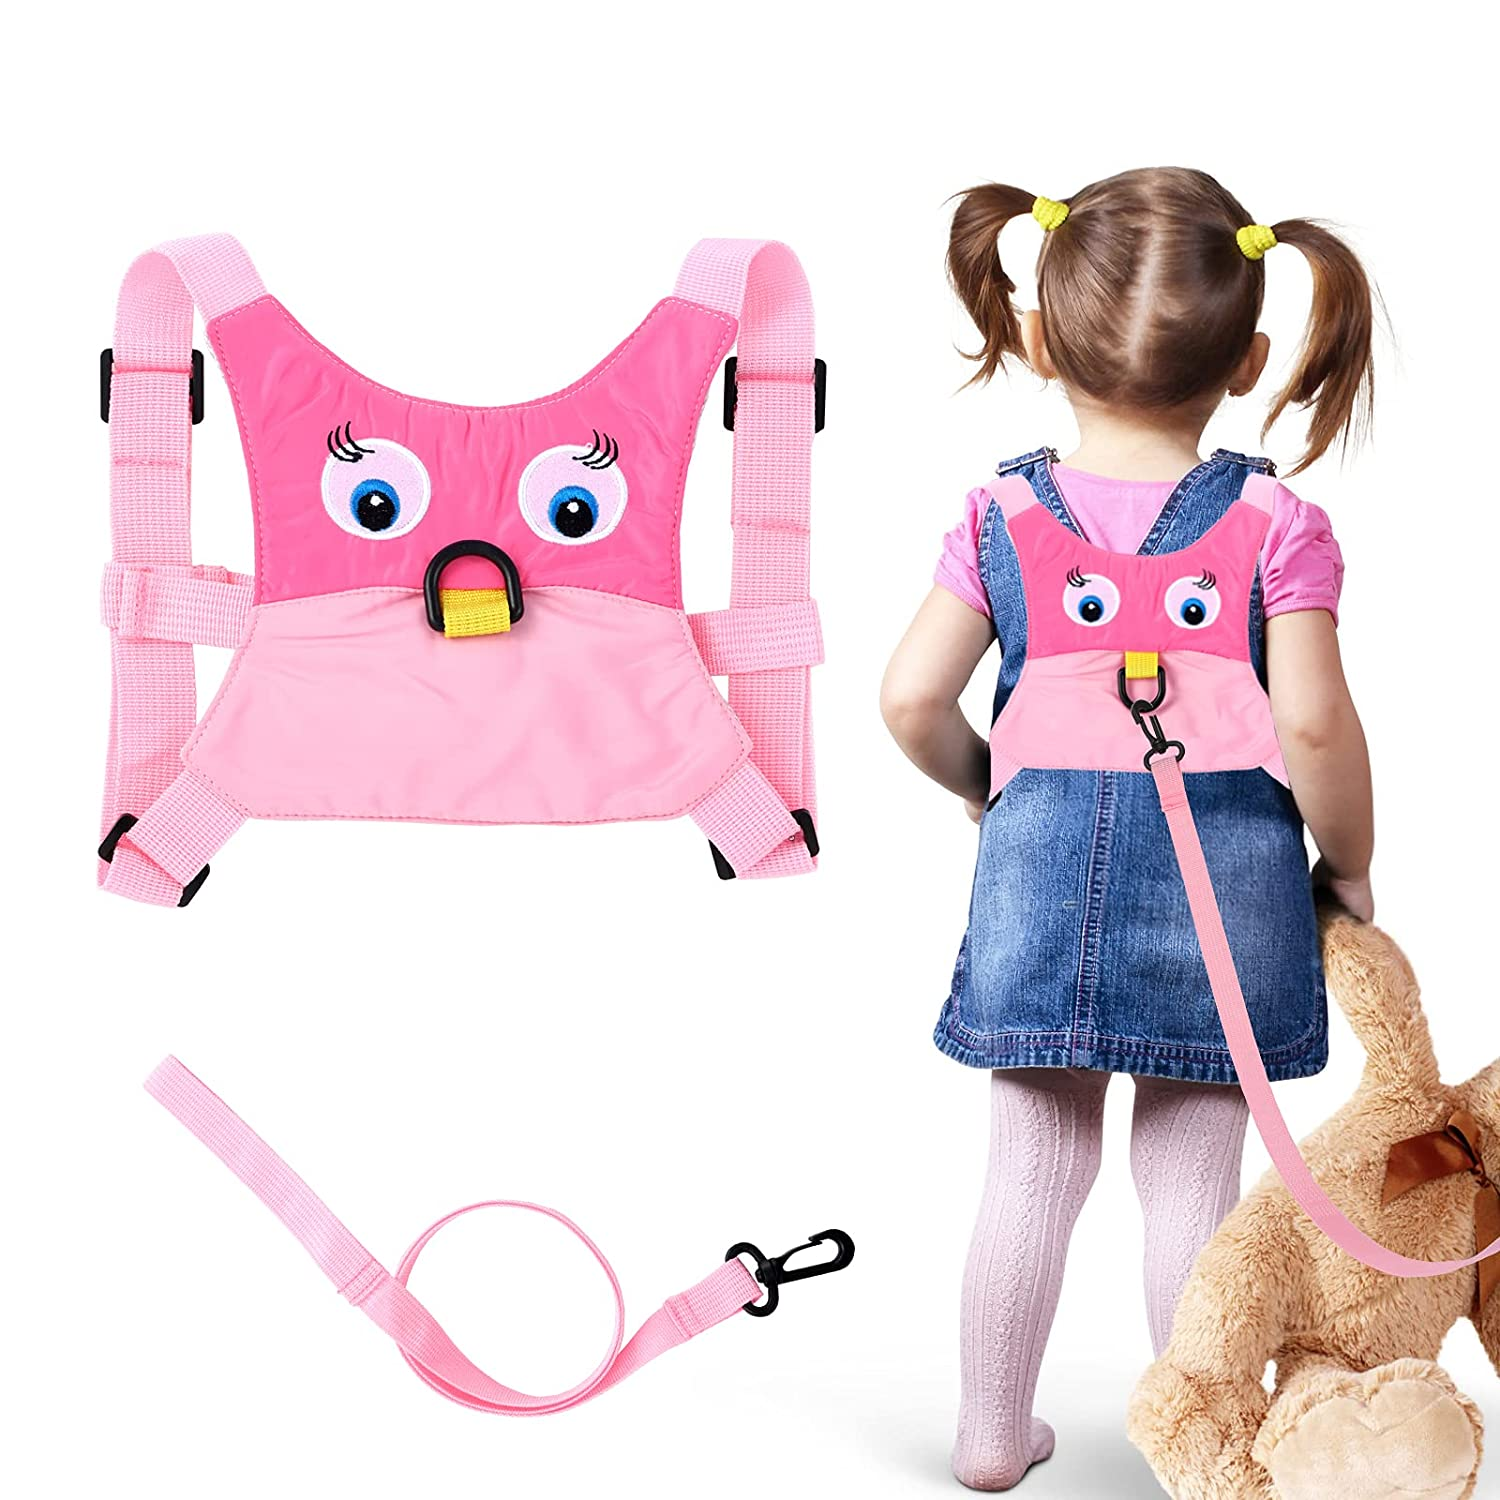 Baby Anti Lost Safety Walking Harness Toddler Safety Leash for Babies & Kids Boys and Girls(Pink)